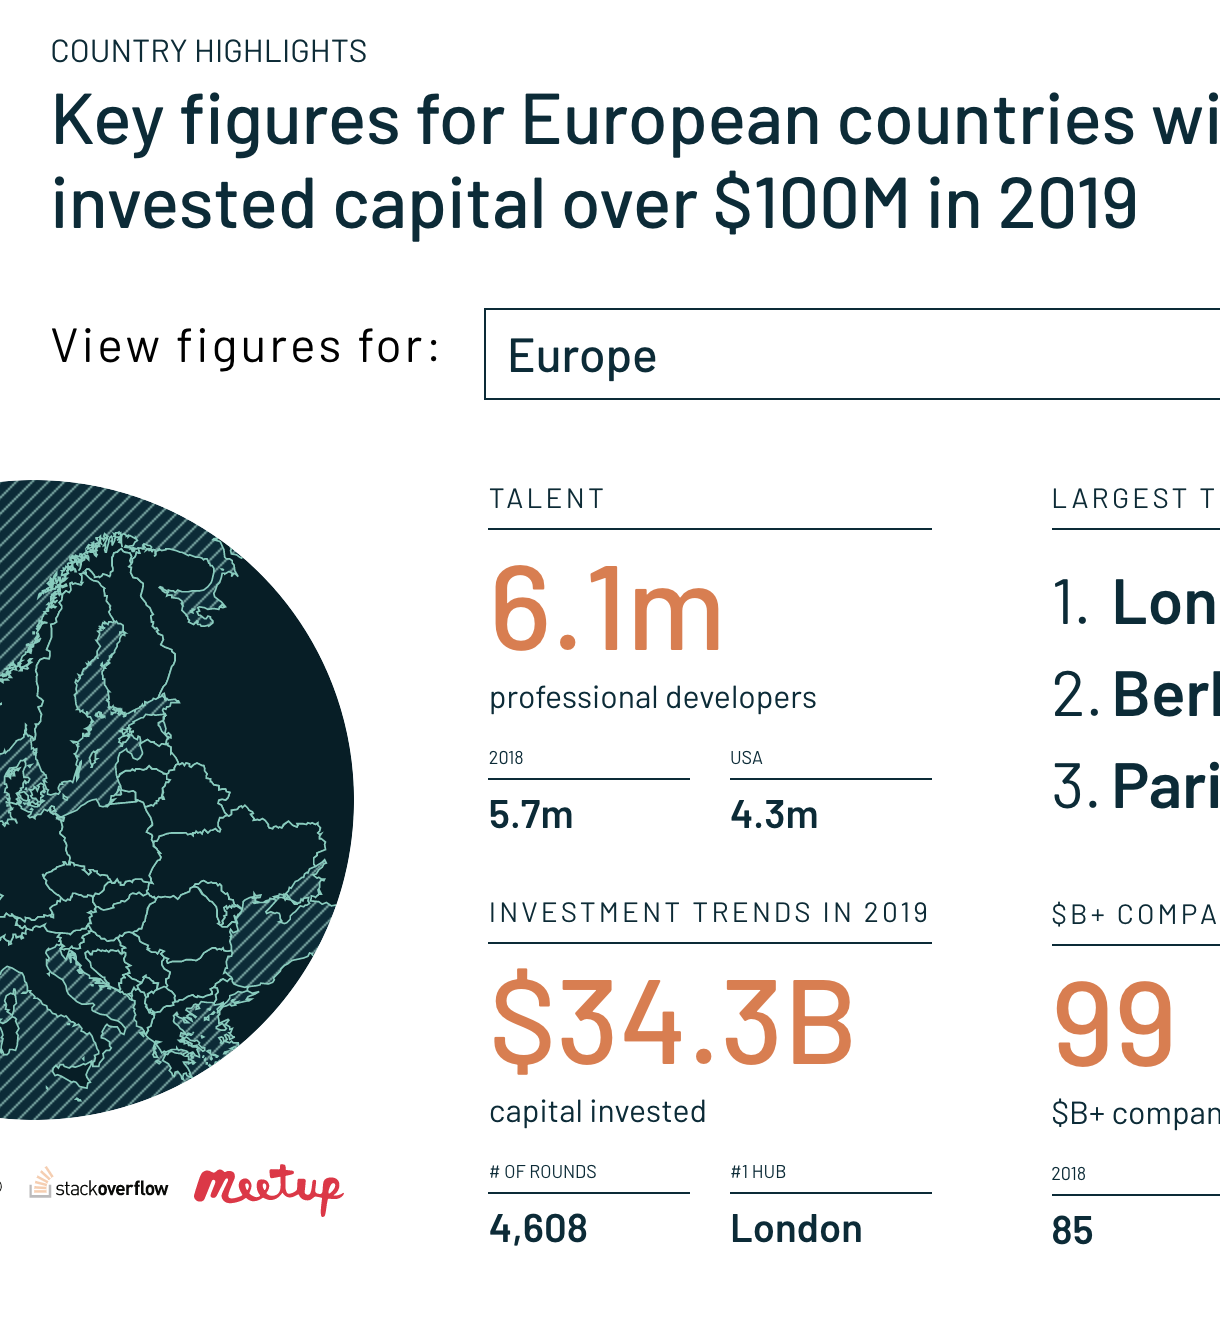 Key figures for european countries with invested capital over 100M dollars in 2019 - statistic